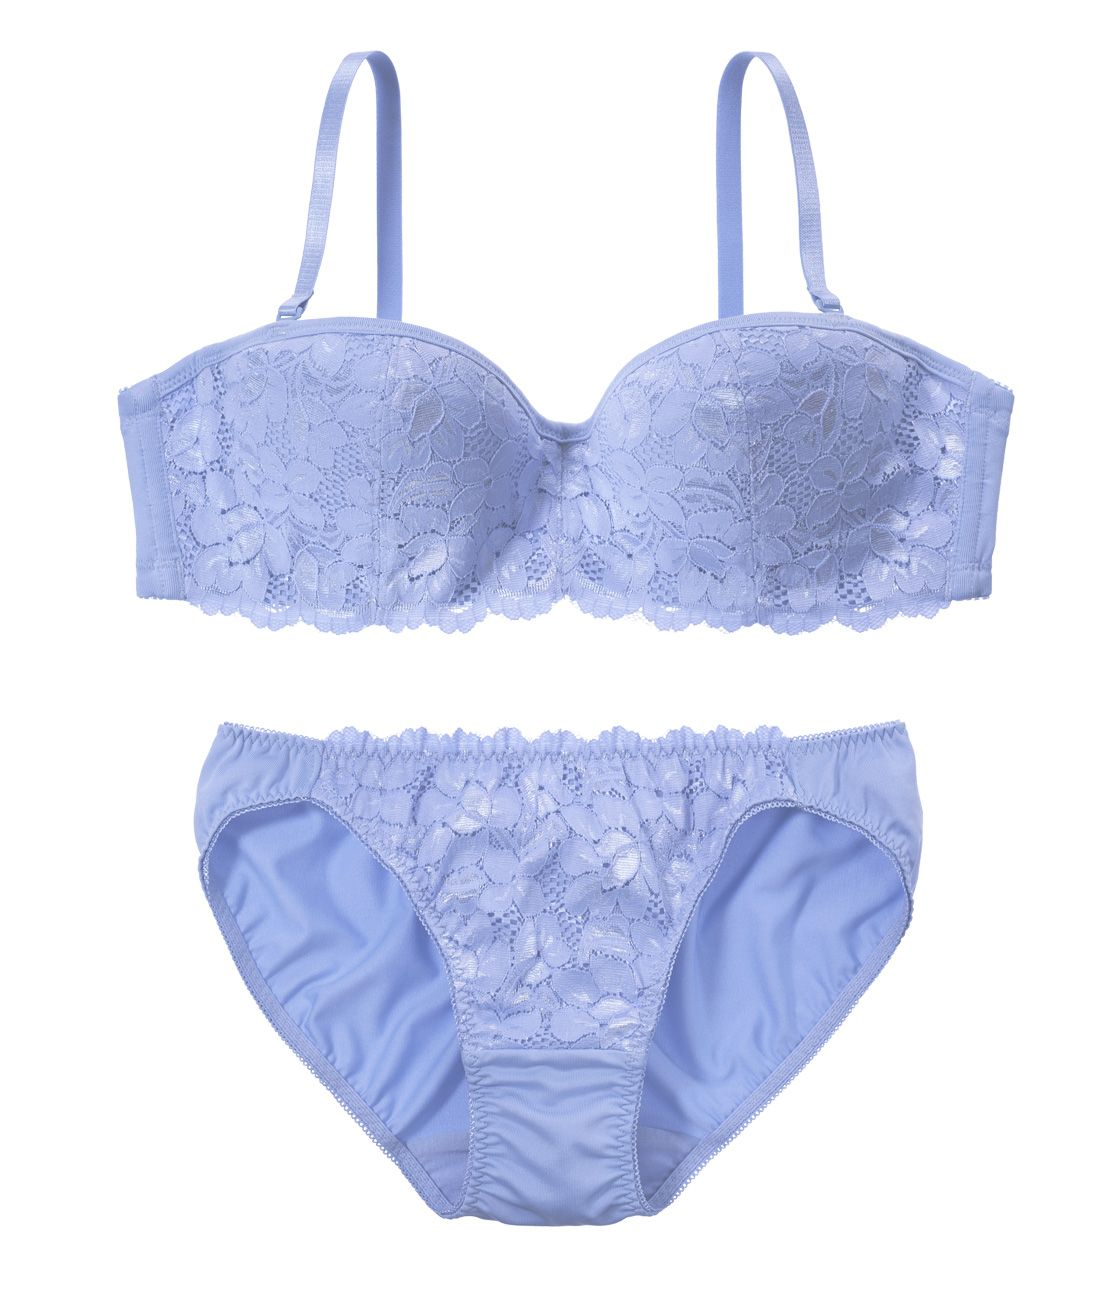 YM Simple Lace Strapless Set